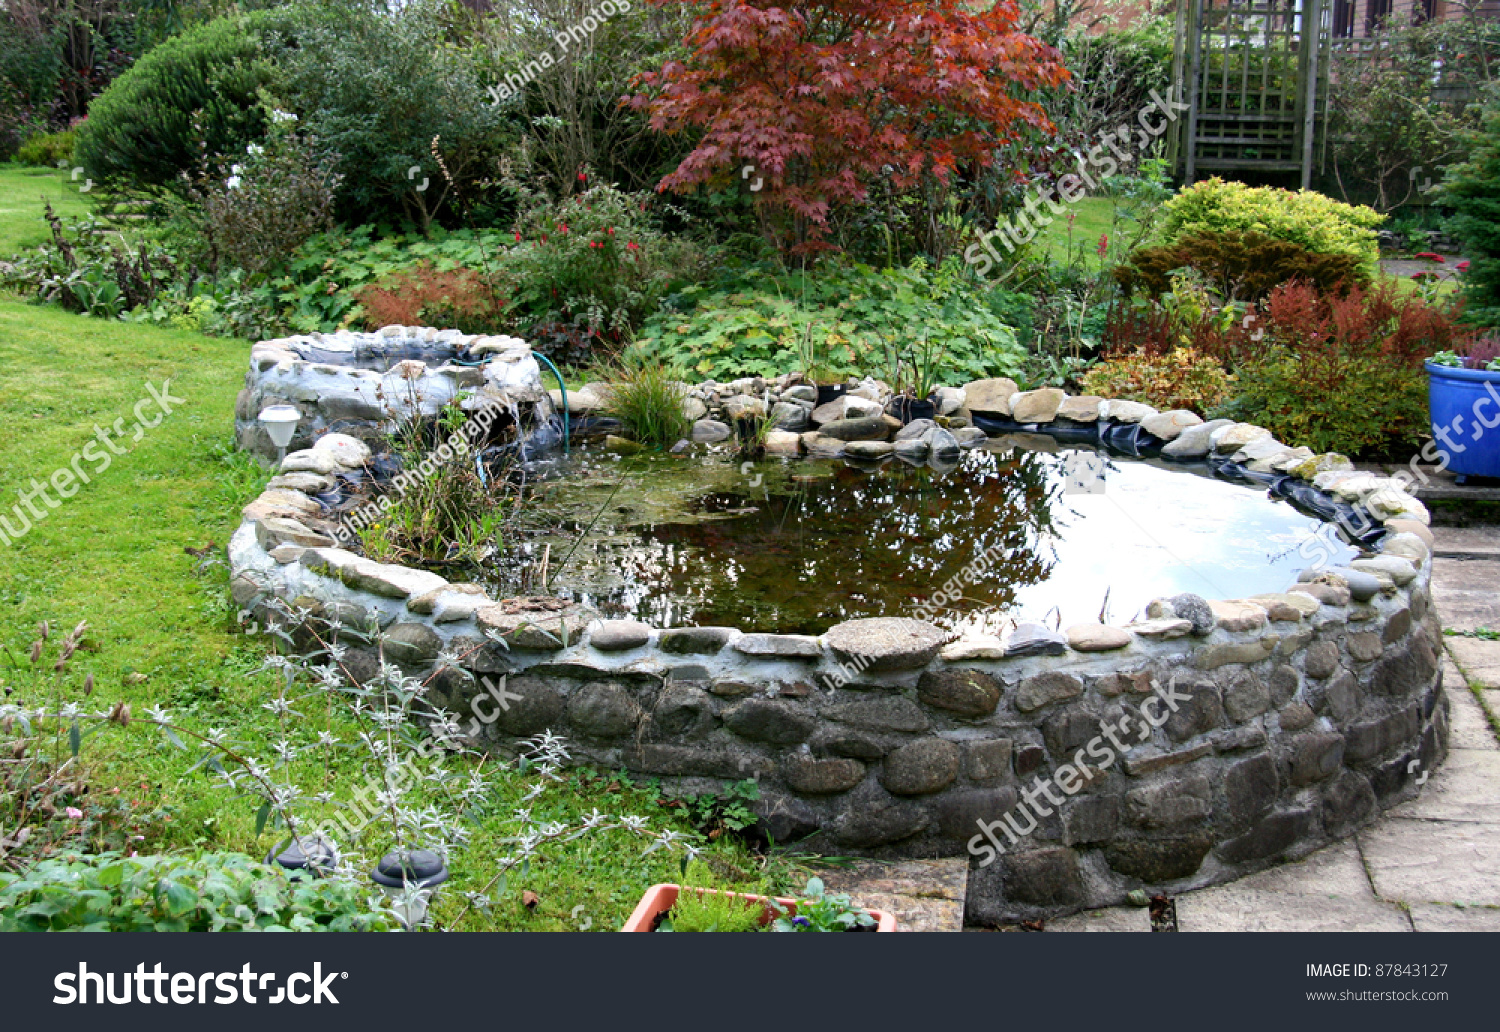 Garden pond small trickle waterfall stock photo 87843127 for Garden pond design software free download